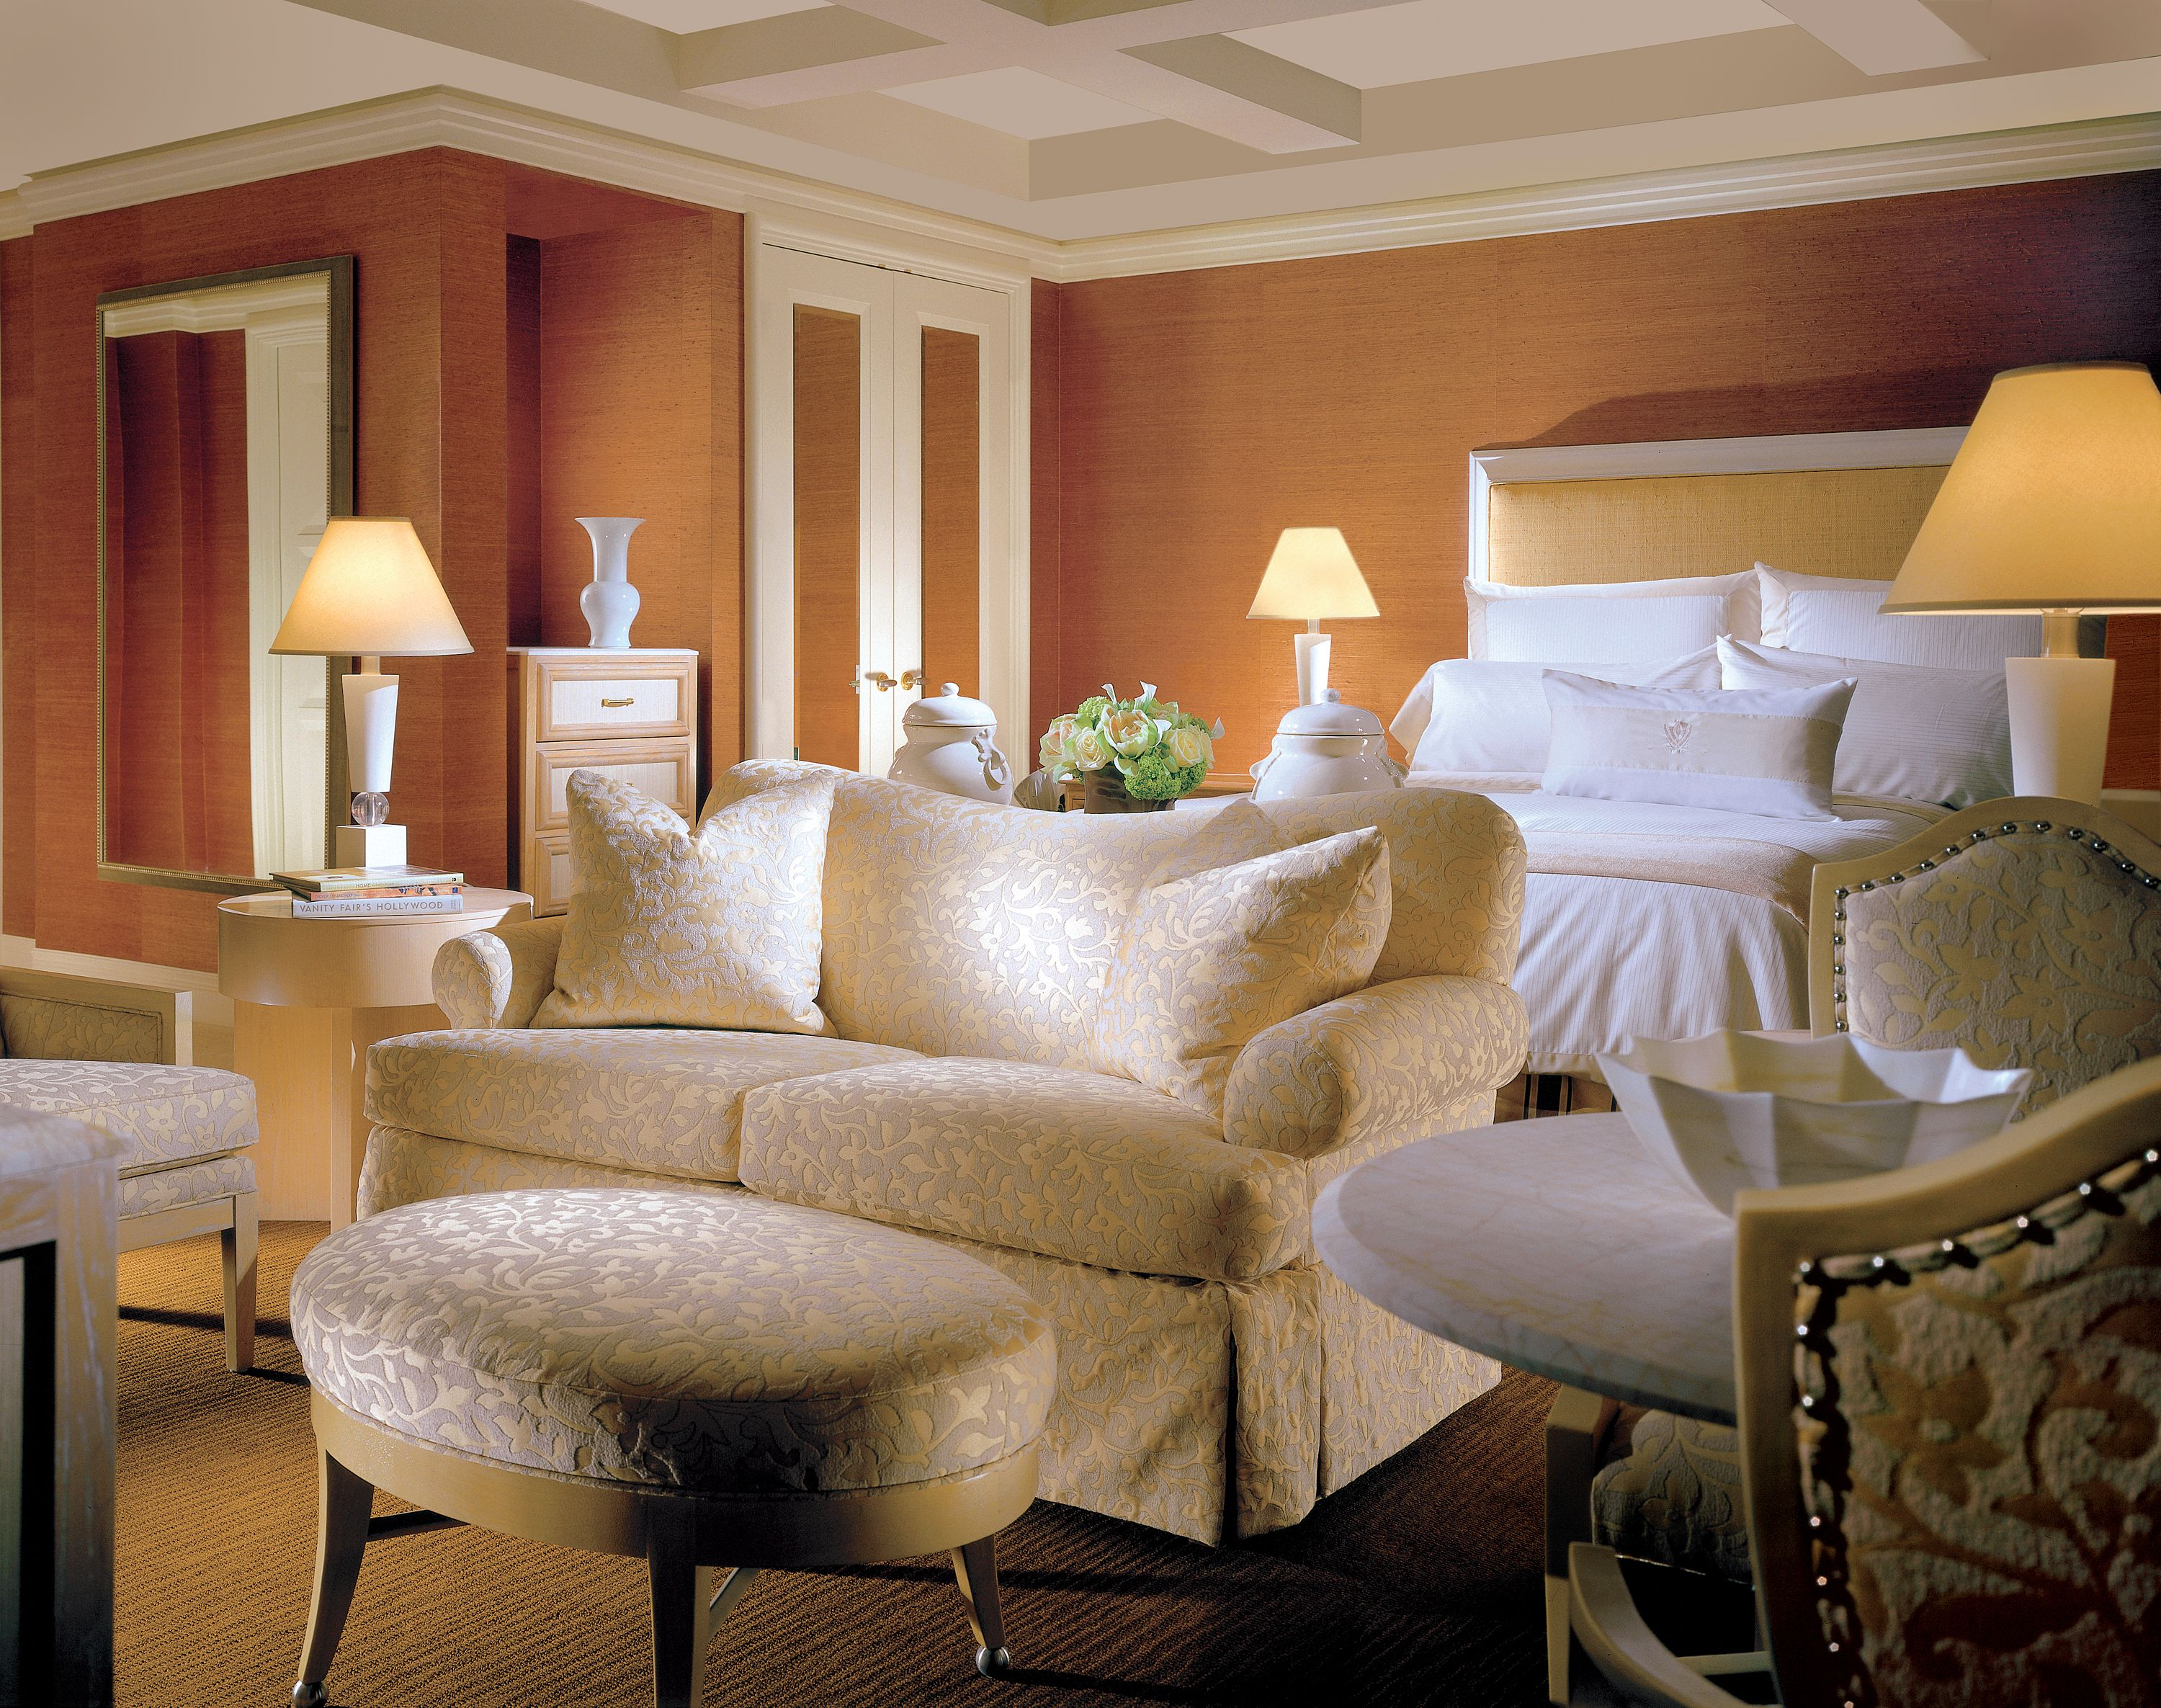 A small glimpse of the executive suite at the Wynn (With